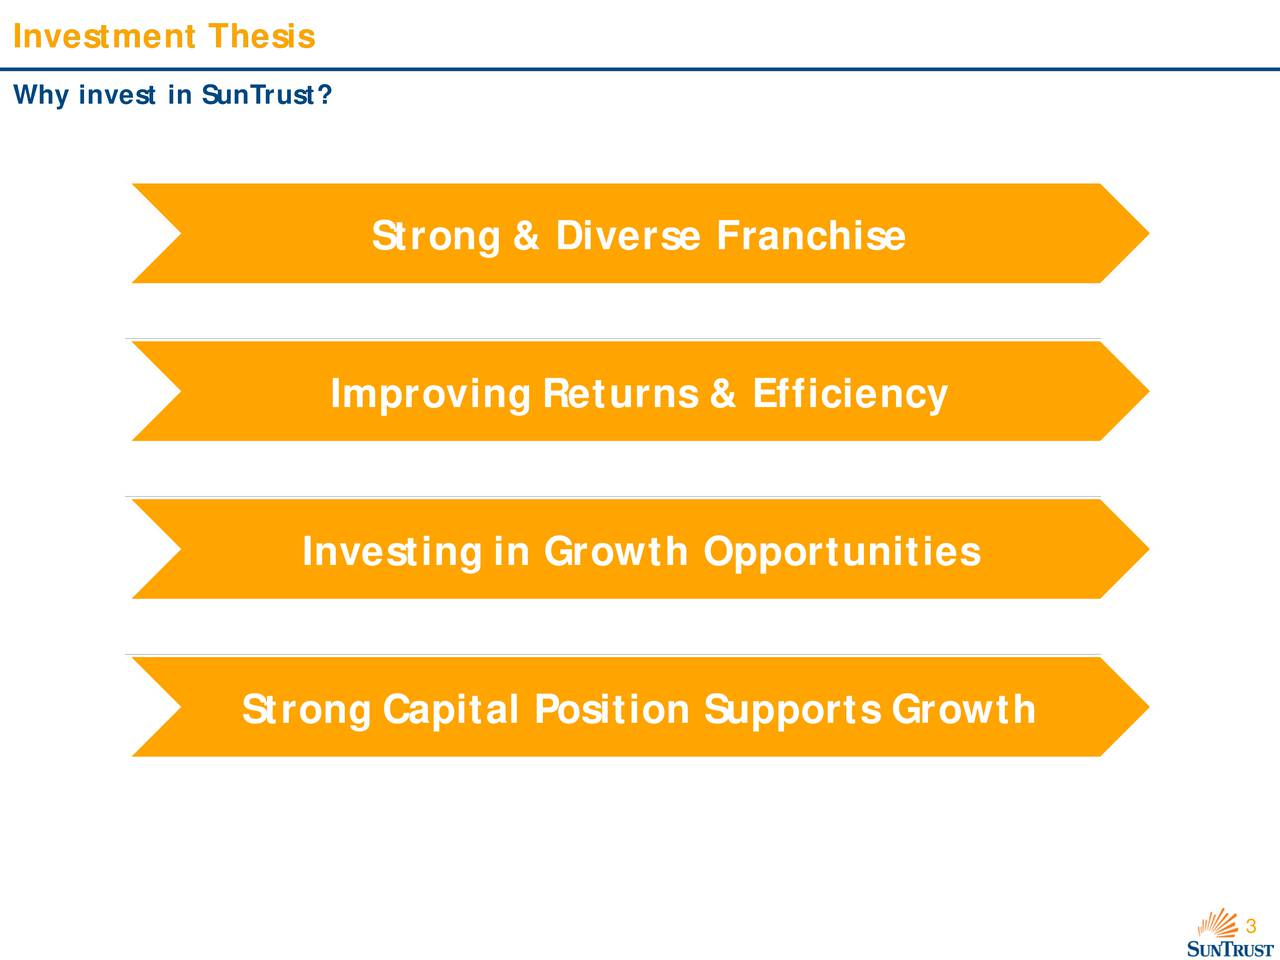 Why invest in SunTrust? Strong & Diverse Franchise Improving Returns & Efficiency Investing in Growth Opportunities Strong Capital Position Supports Growth 3